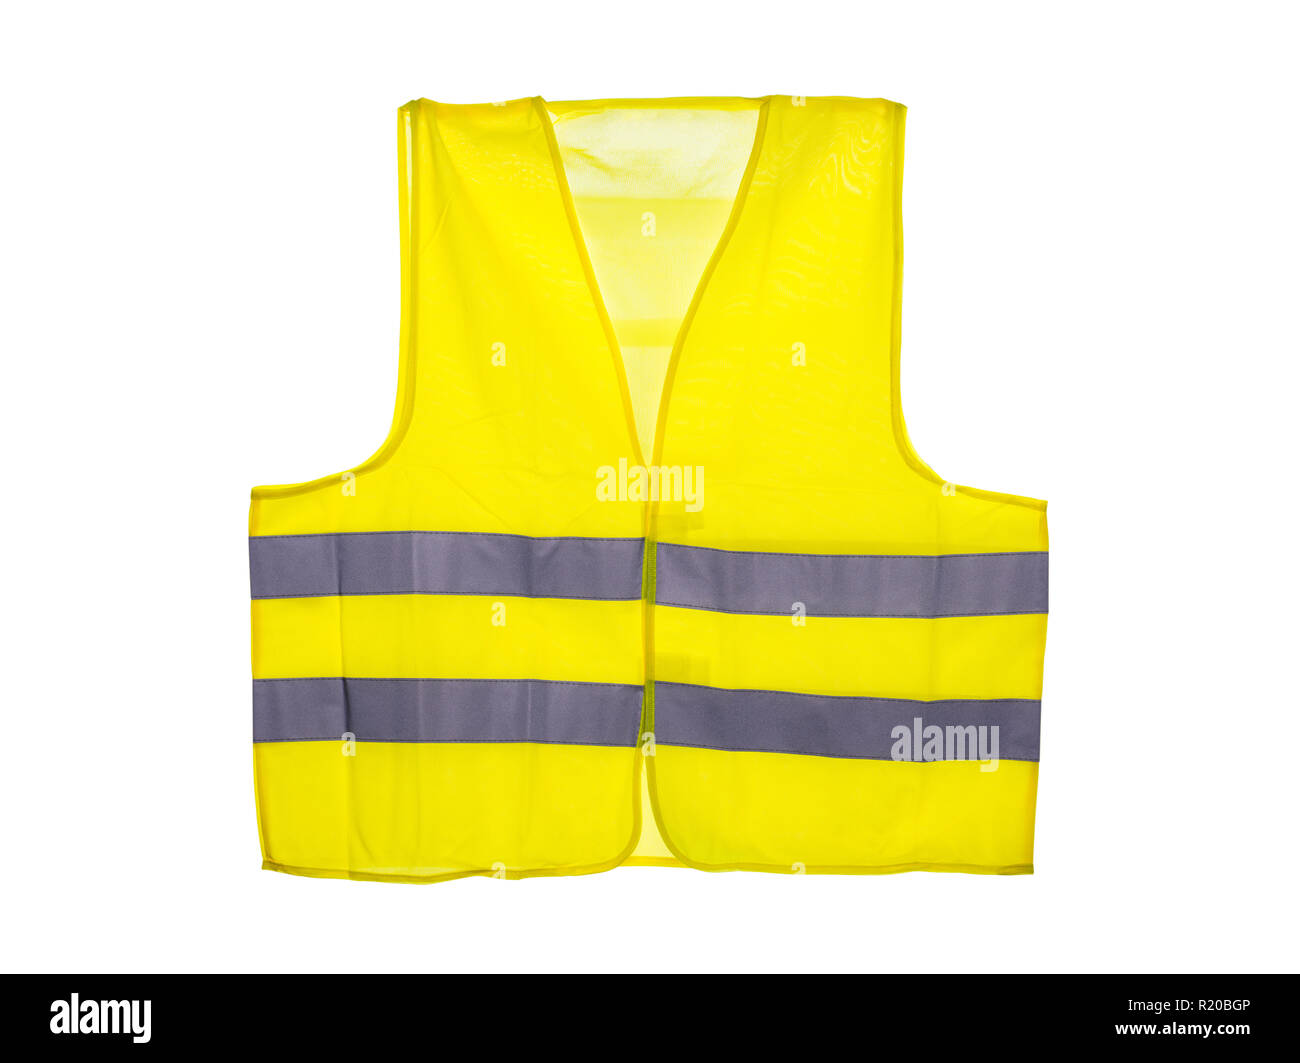 Yellow safety vest, isolated on a white background with a clipping path. - Stock Image